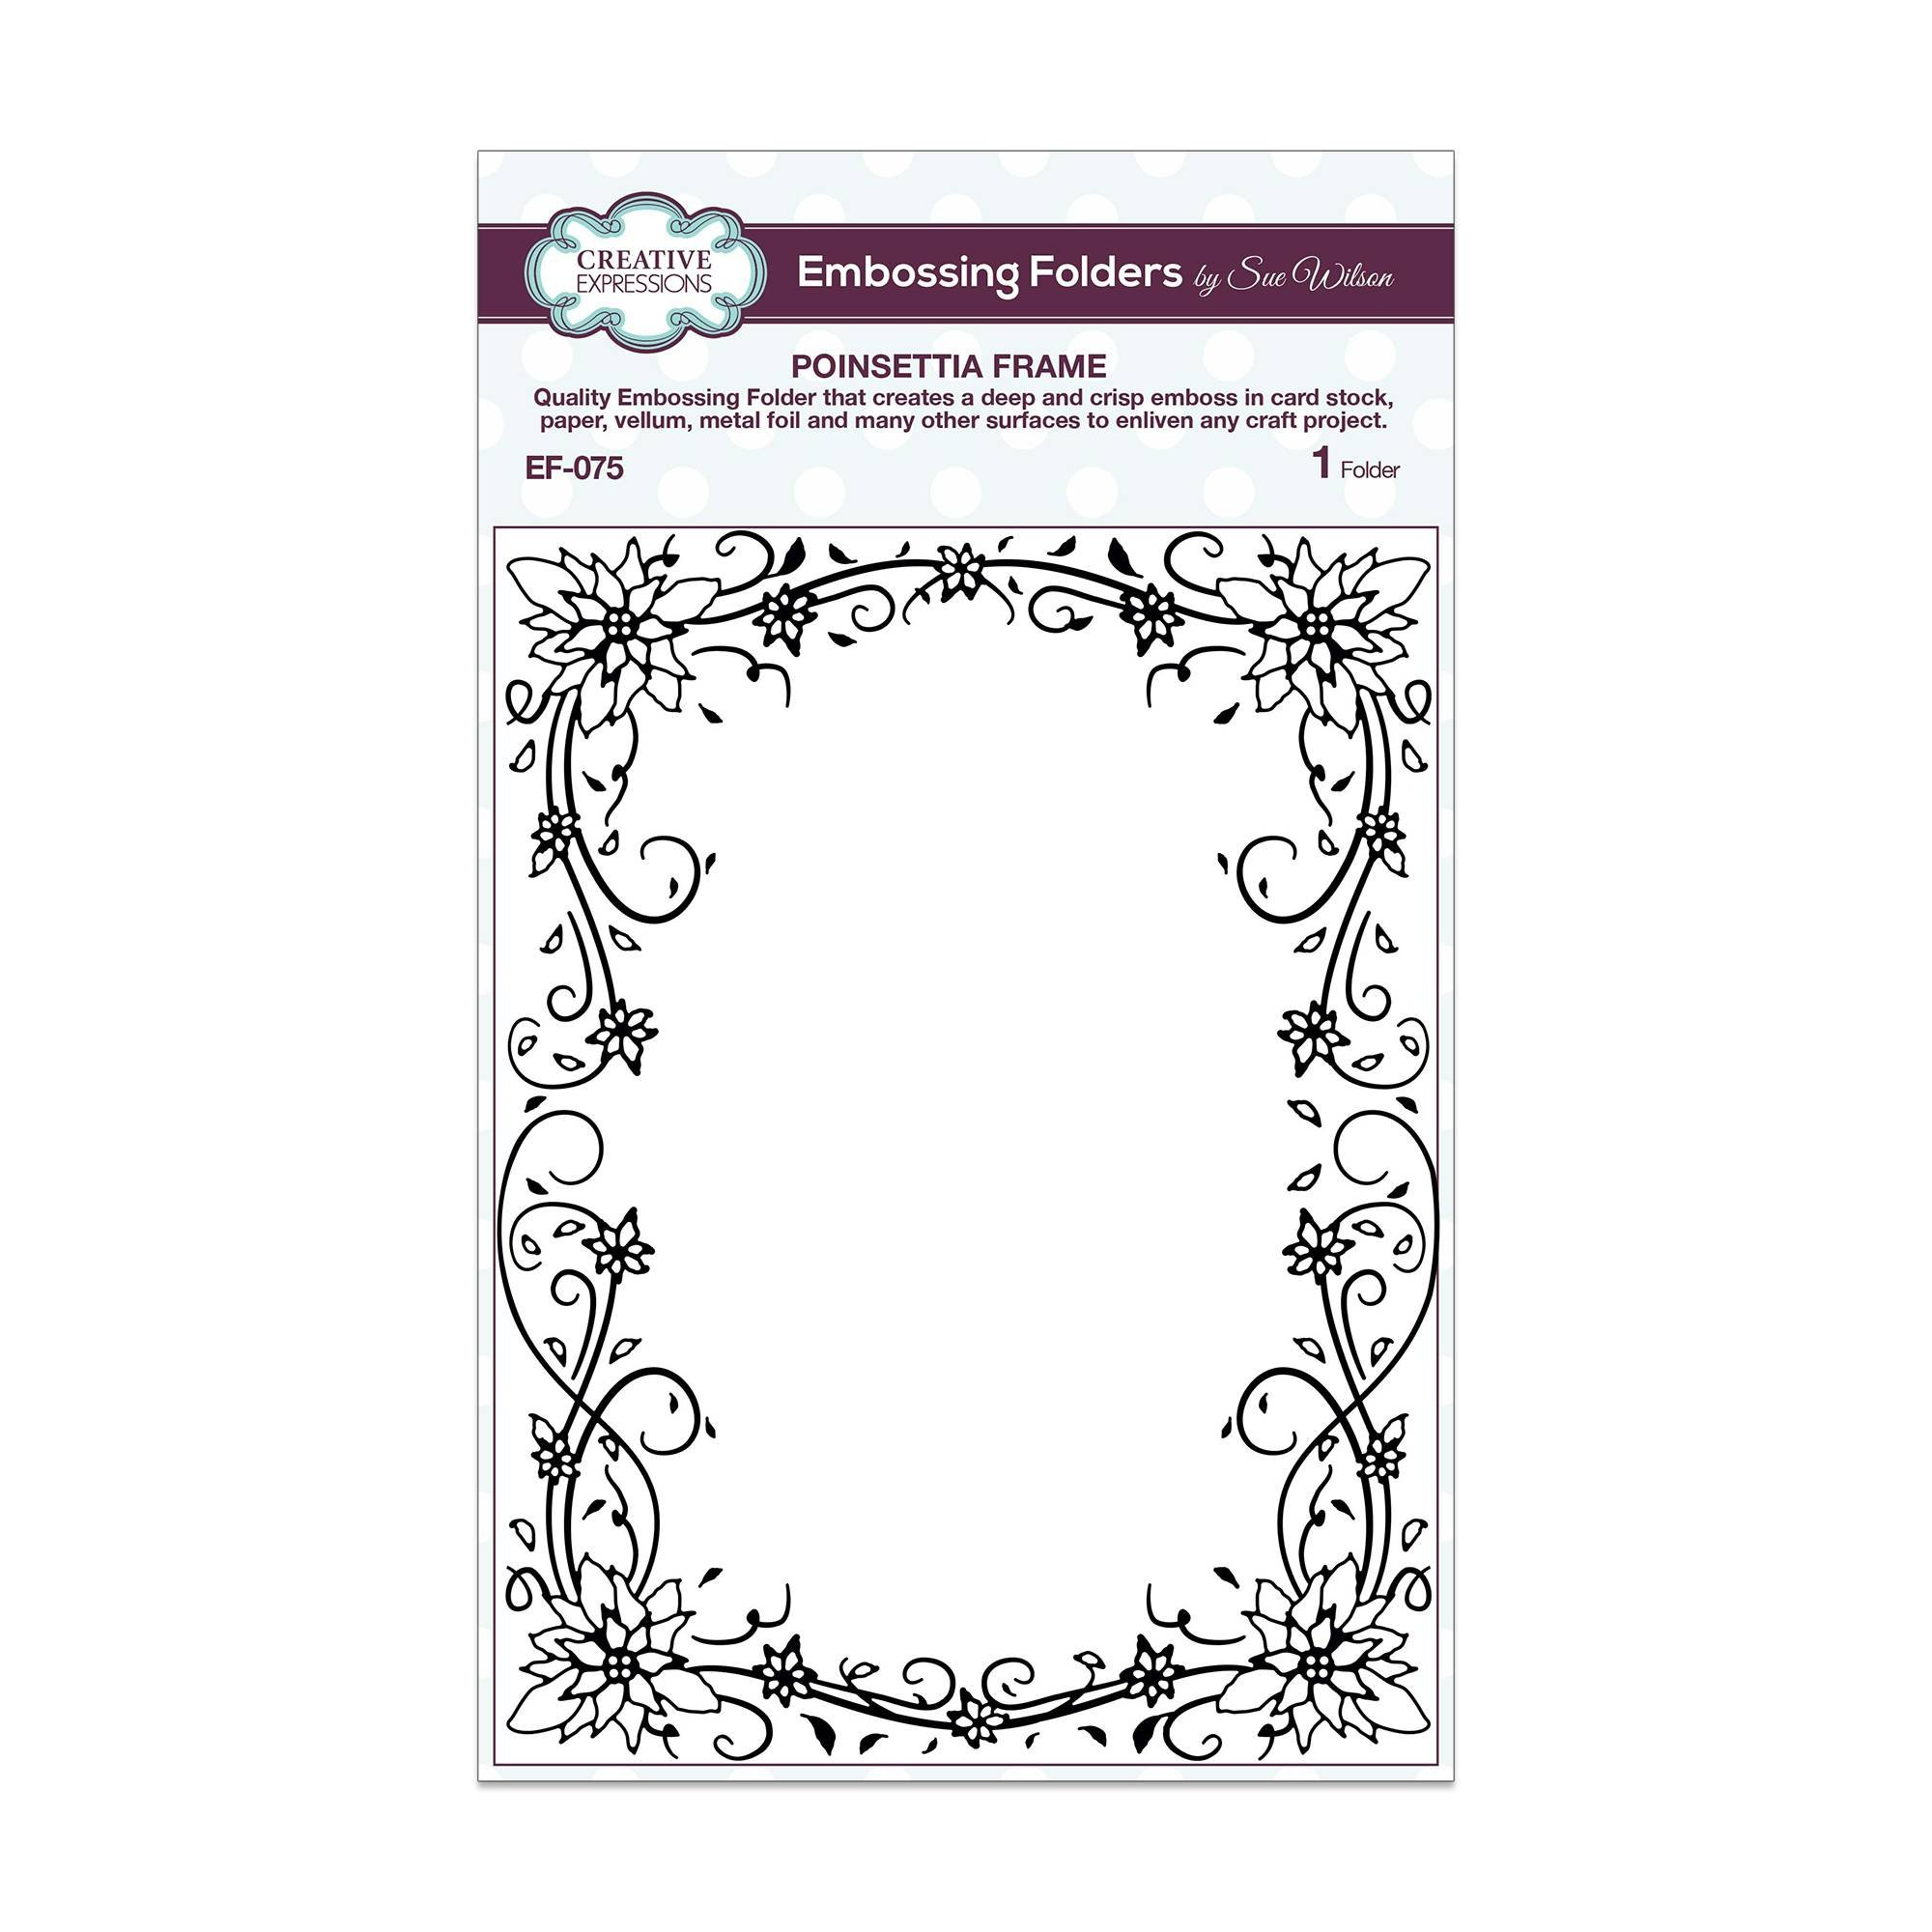 Creative Expressions Embossing Folder - Poinsettia Frame 5 3/4 x 7 1/2 by Creative Expressions